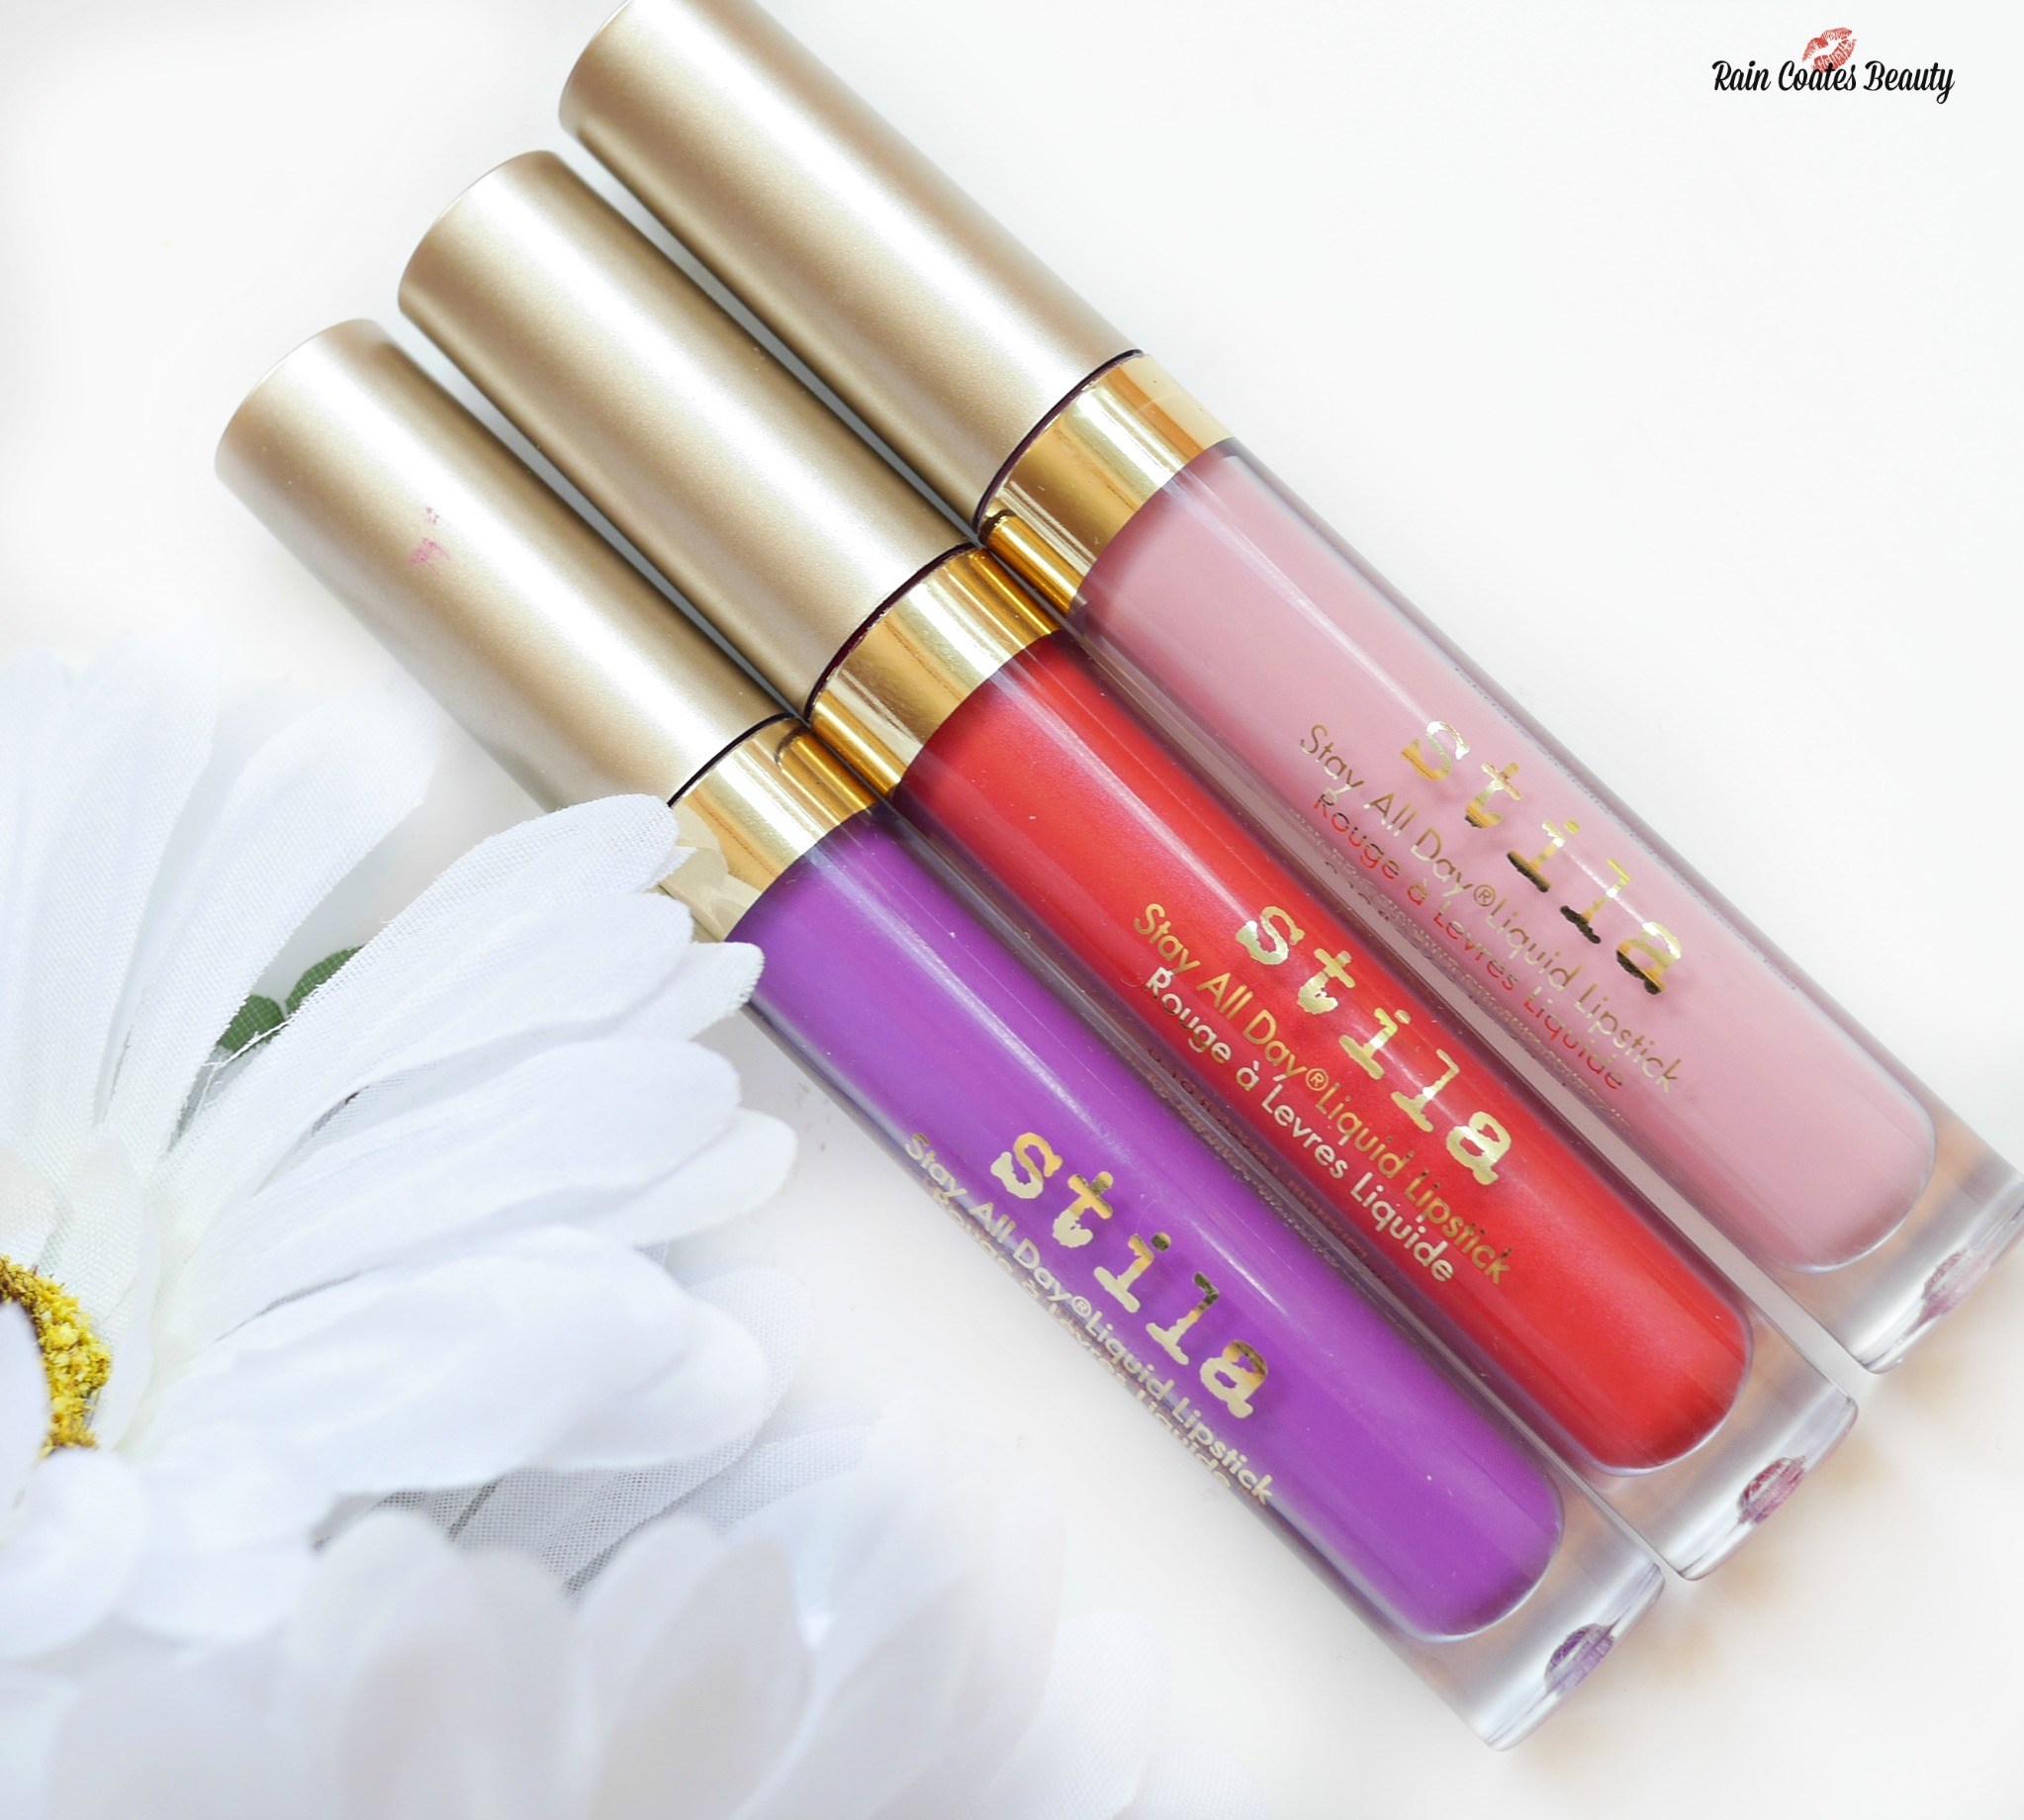 Stila Stay All Day Liquid Lipsticks – Sun, Sea, Splash Collection (Review & Swatches)